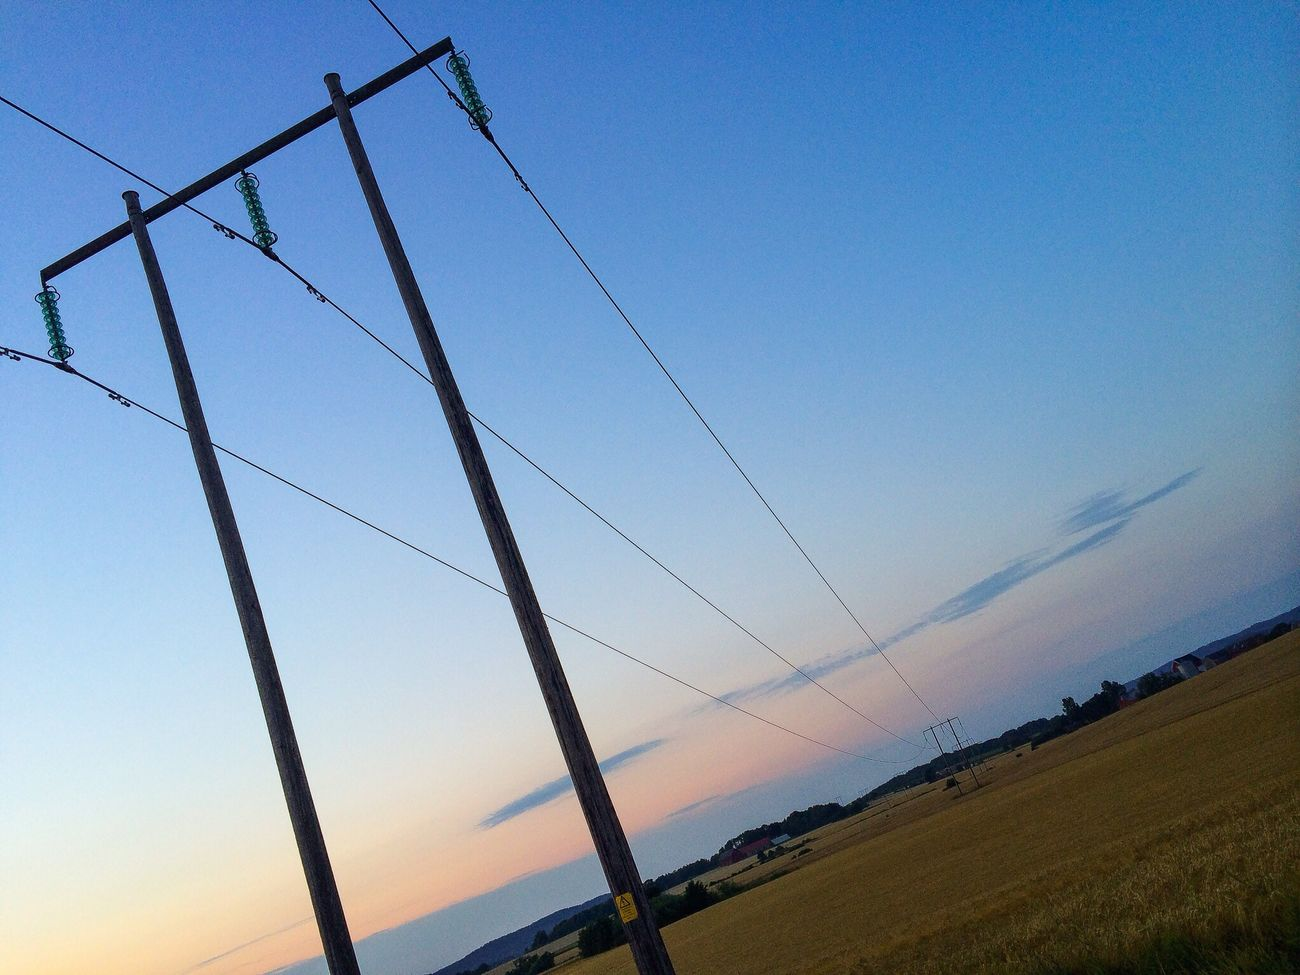 Wired, suspended and connected. IPhoneography Landscape Sky Taking Photos